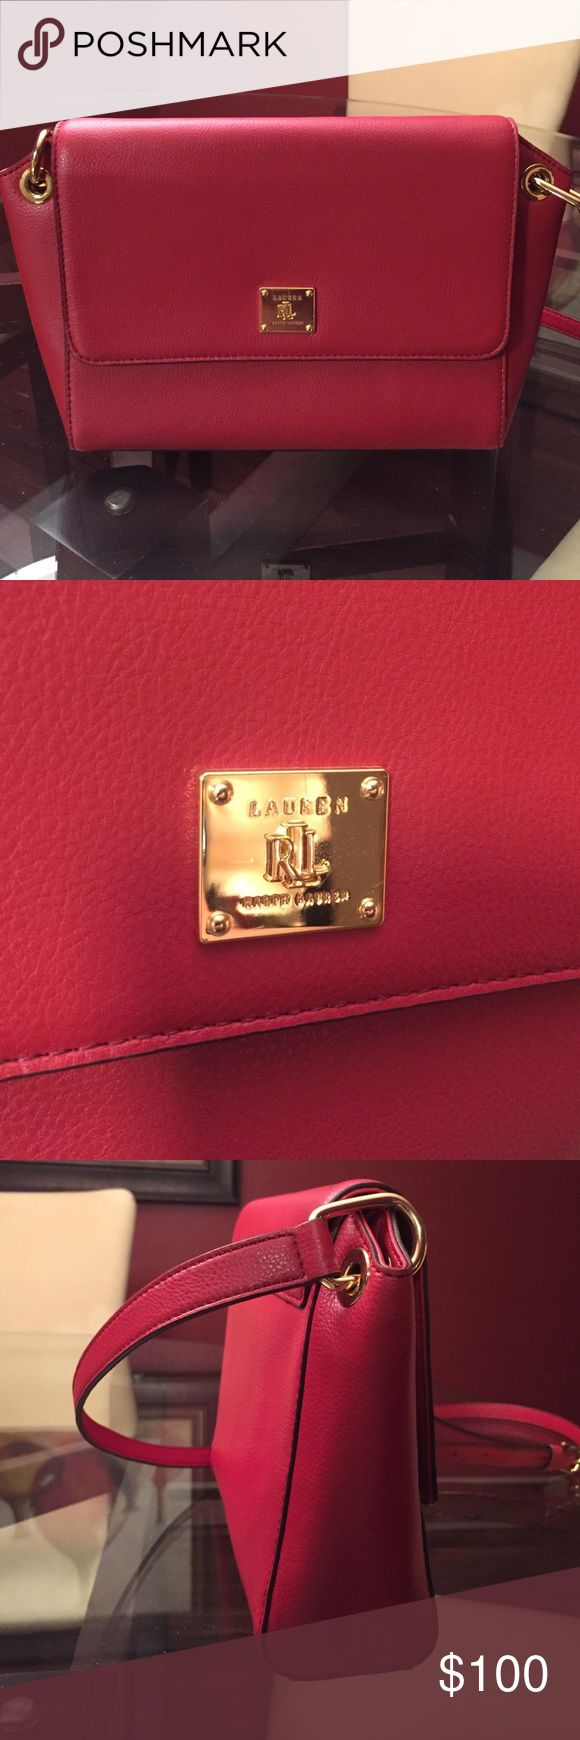 Never been used Lauren by Ralph Lauren purse This purse is the perfect size for going out with the essentials. It's in perfect condition, as I have never used it! Lauren Ralph Lauren Bags Crossbody Bags